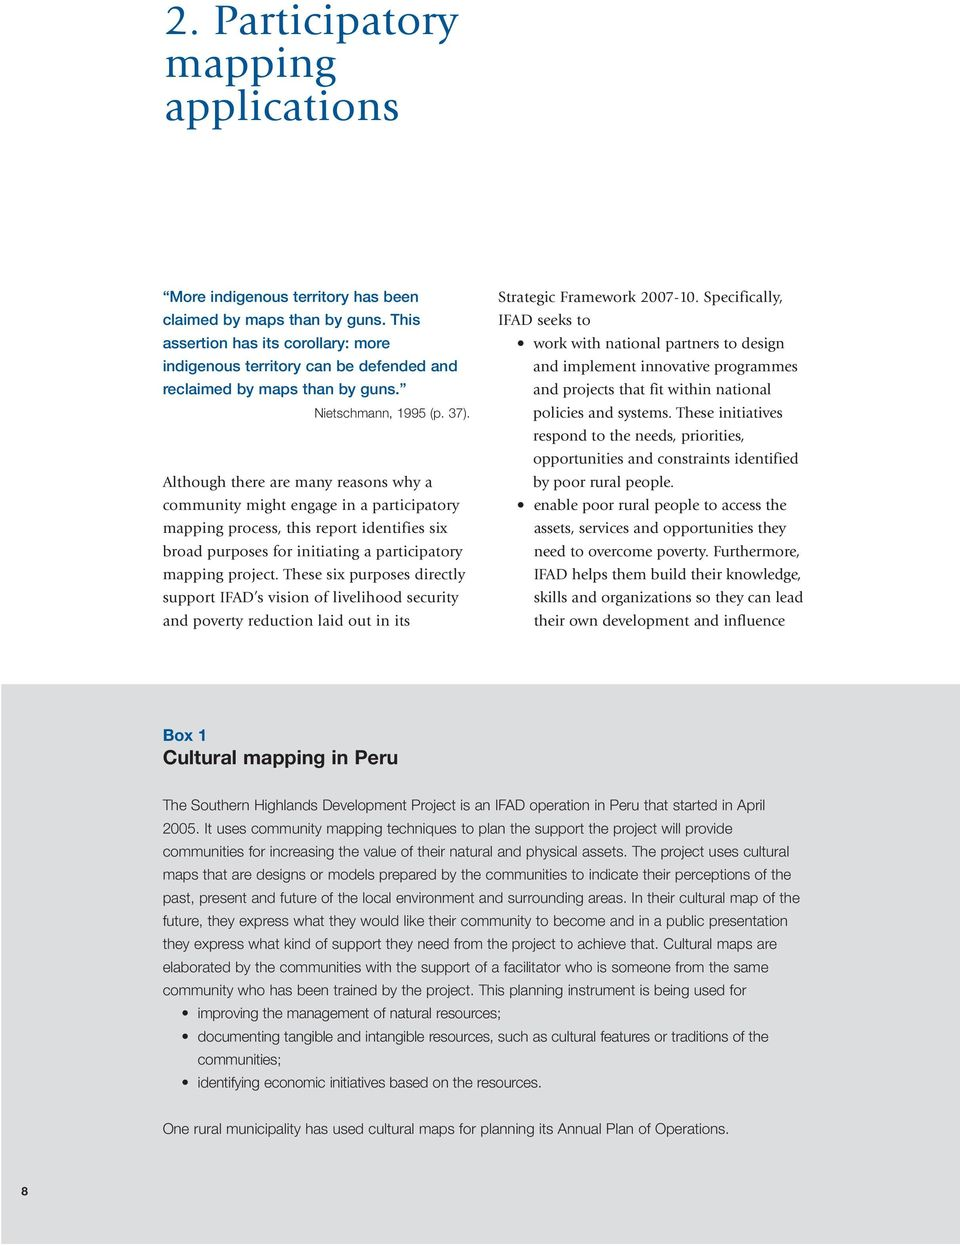 Although there are many reasons why a community might engage in a participatory mapping process, this report identifies six broad purposes for initiating a participatory mapping project.